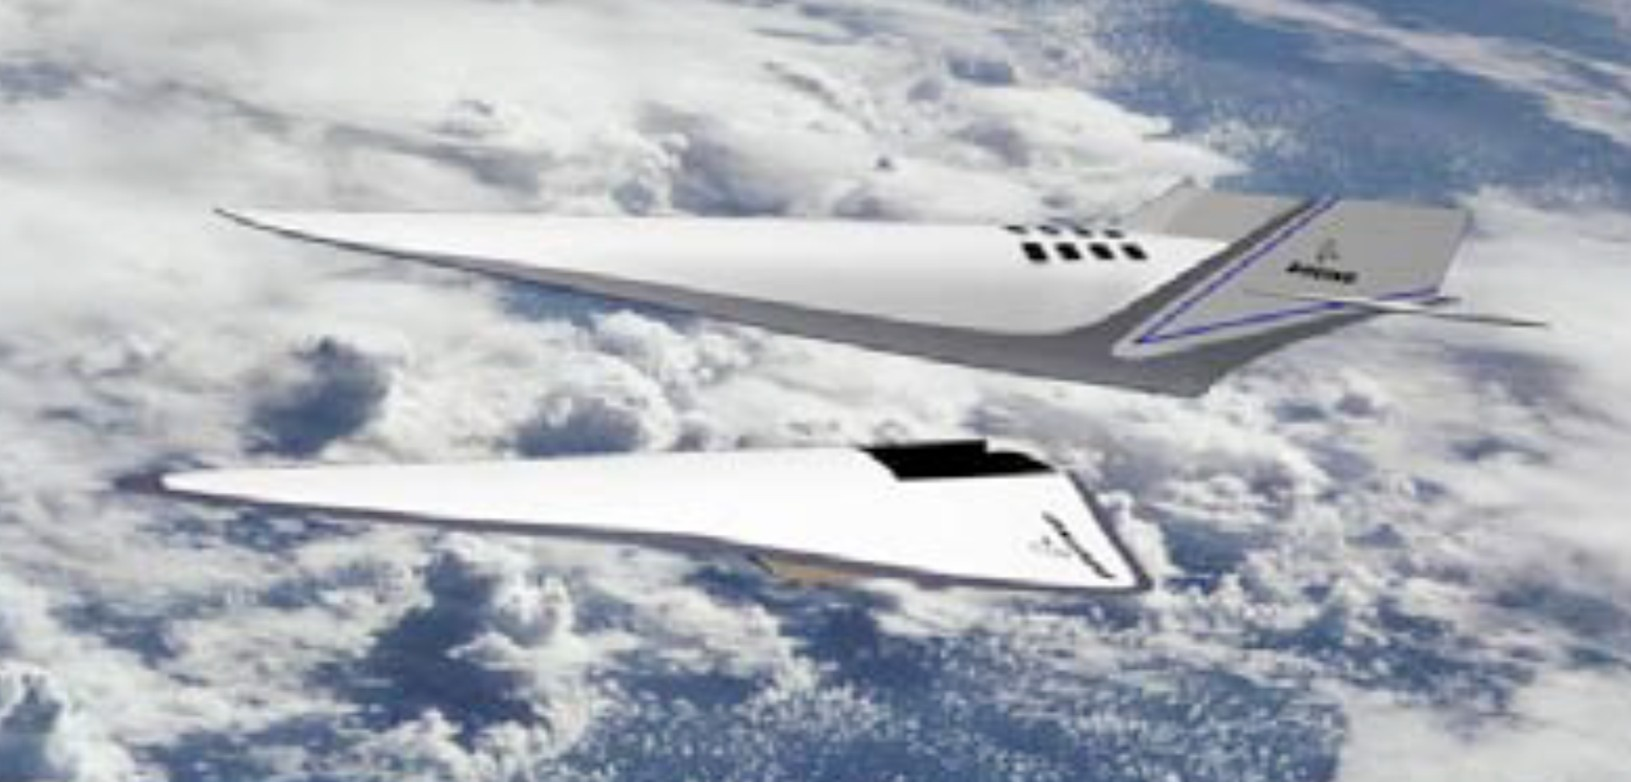 What will future aircraft look like in the 21st century?